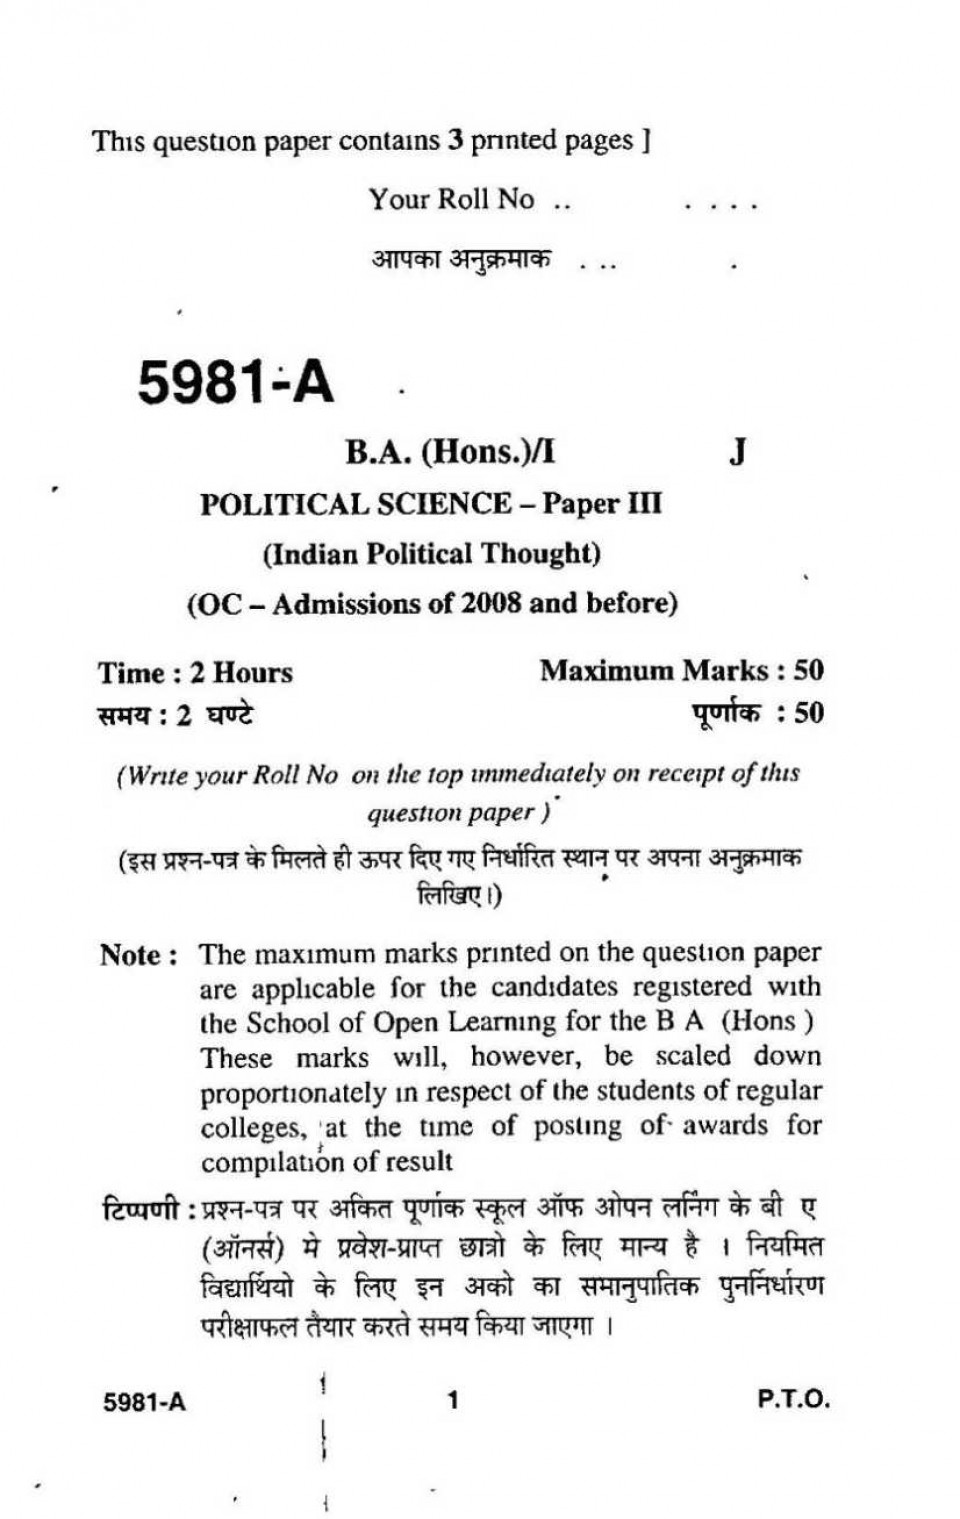 014 Political Science Research Essay Topics Paper Delhi University H First Year Previous Years Question Archaicawful 2014 101 960